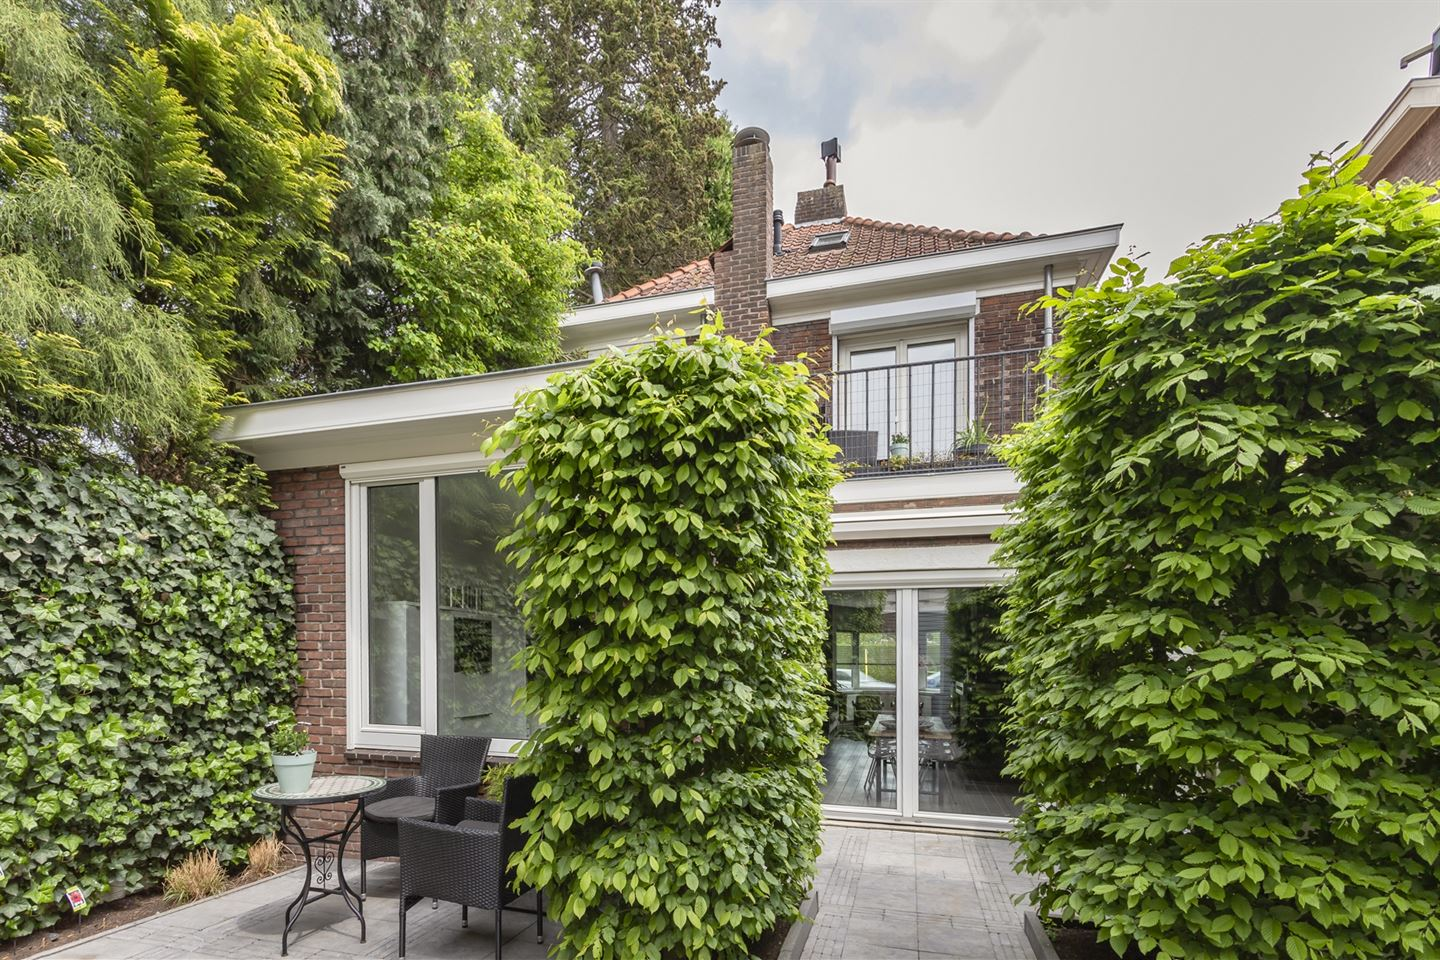 View photo 1 of Ringbaan-Oost 409